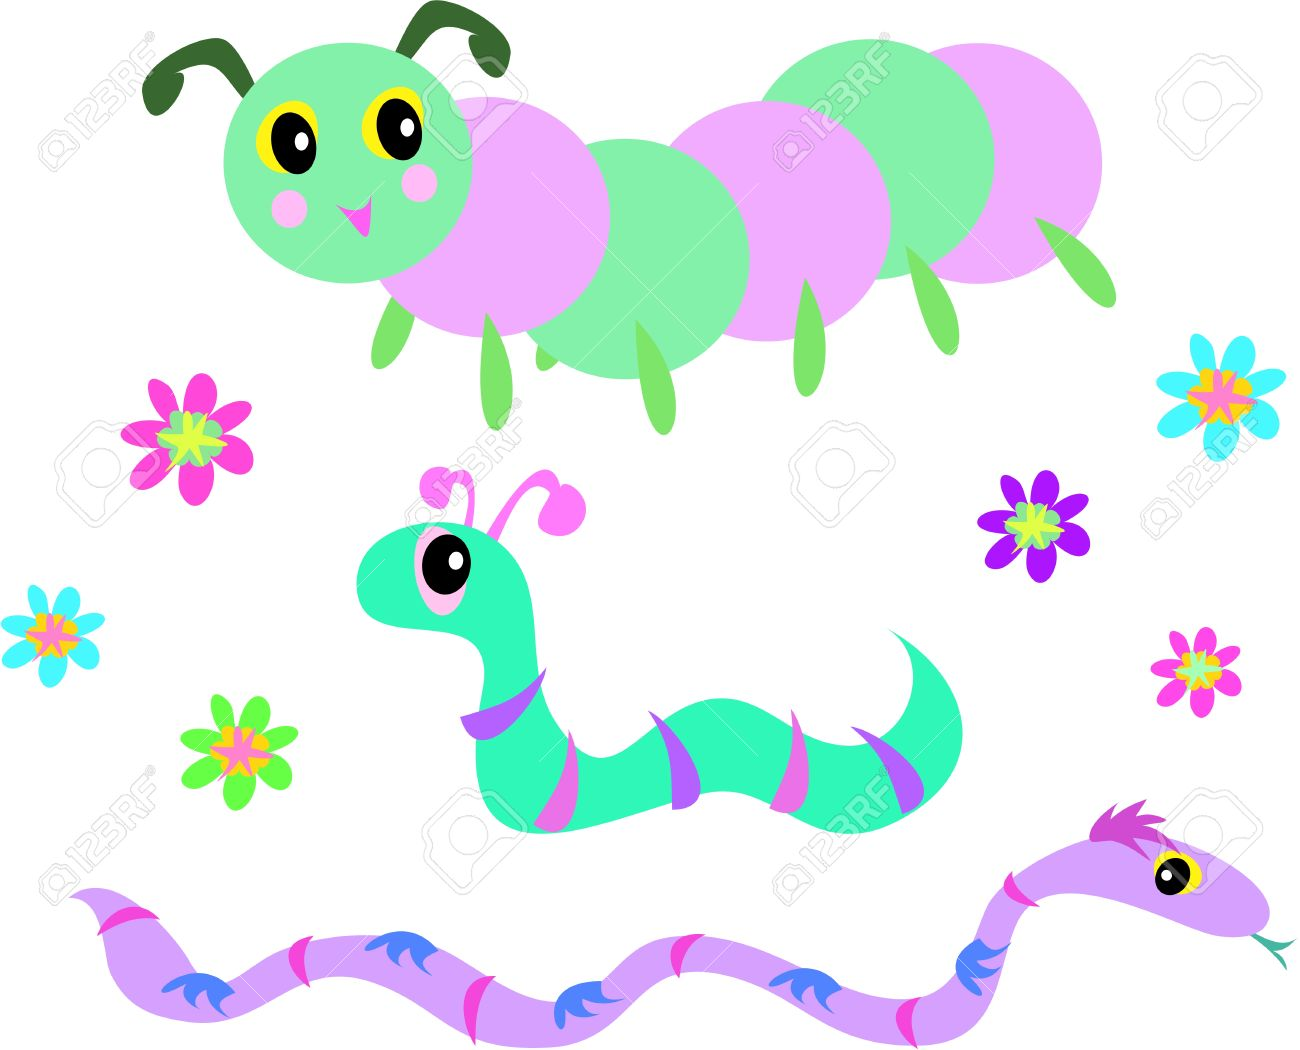 Mix Of Snakes, Worm, Caterpillar, And Flowers Royalty Free.